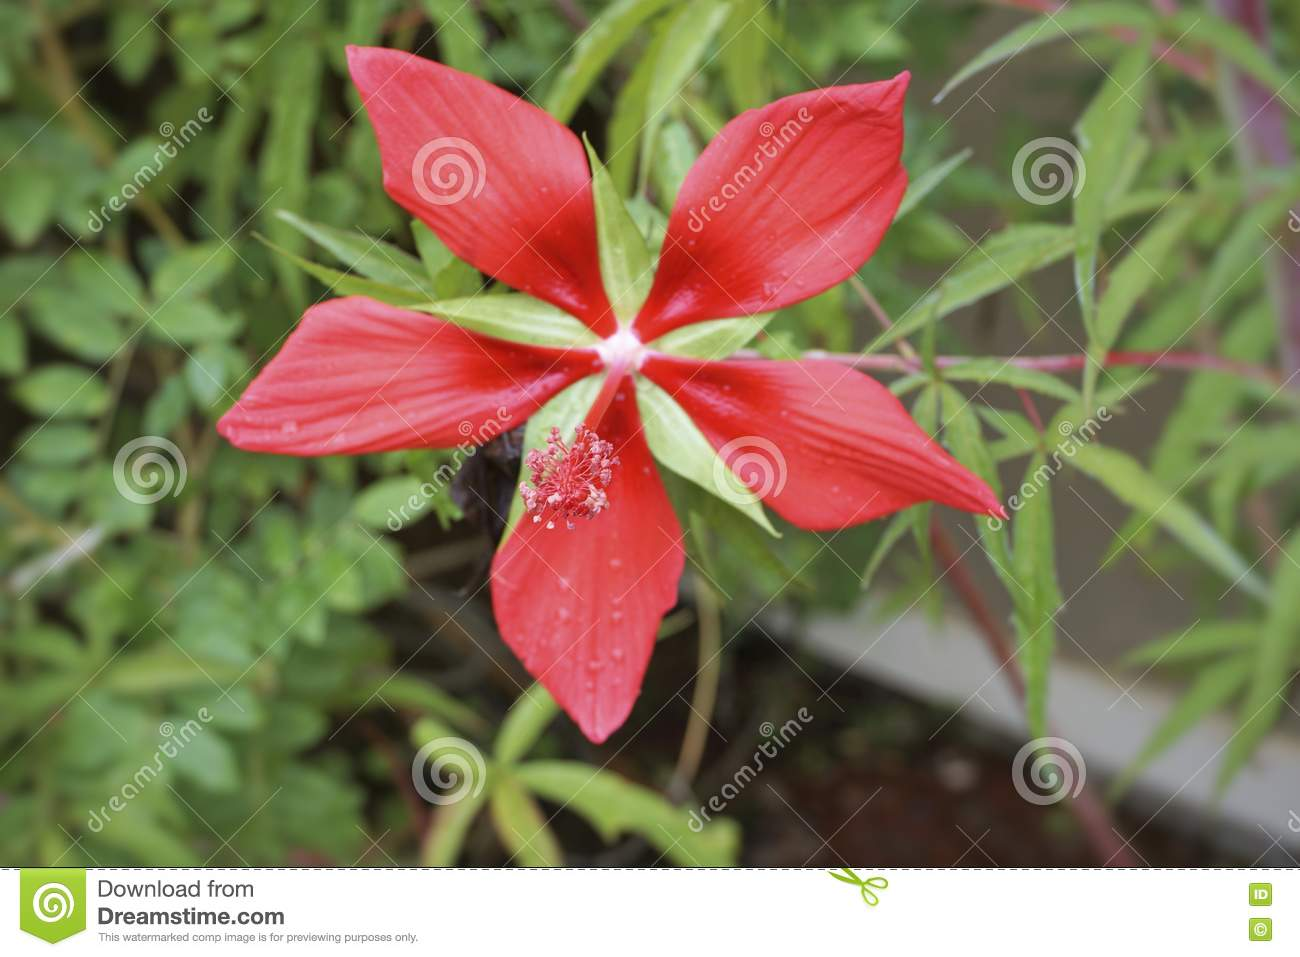 Texas Star Hibiscus Stock Photo Image Of Scarlet Leaves 78580278